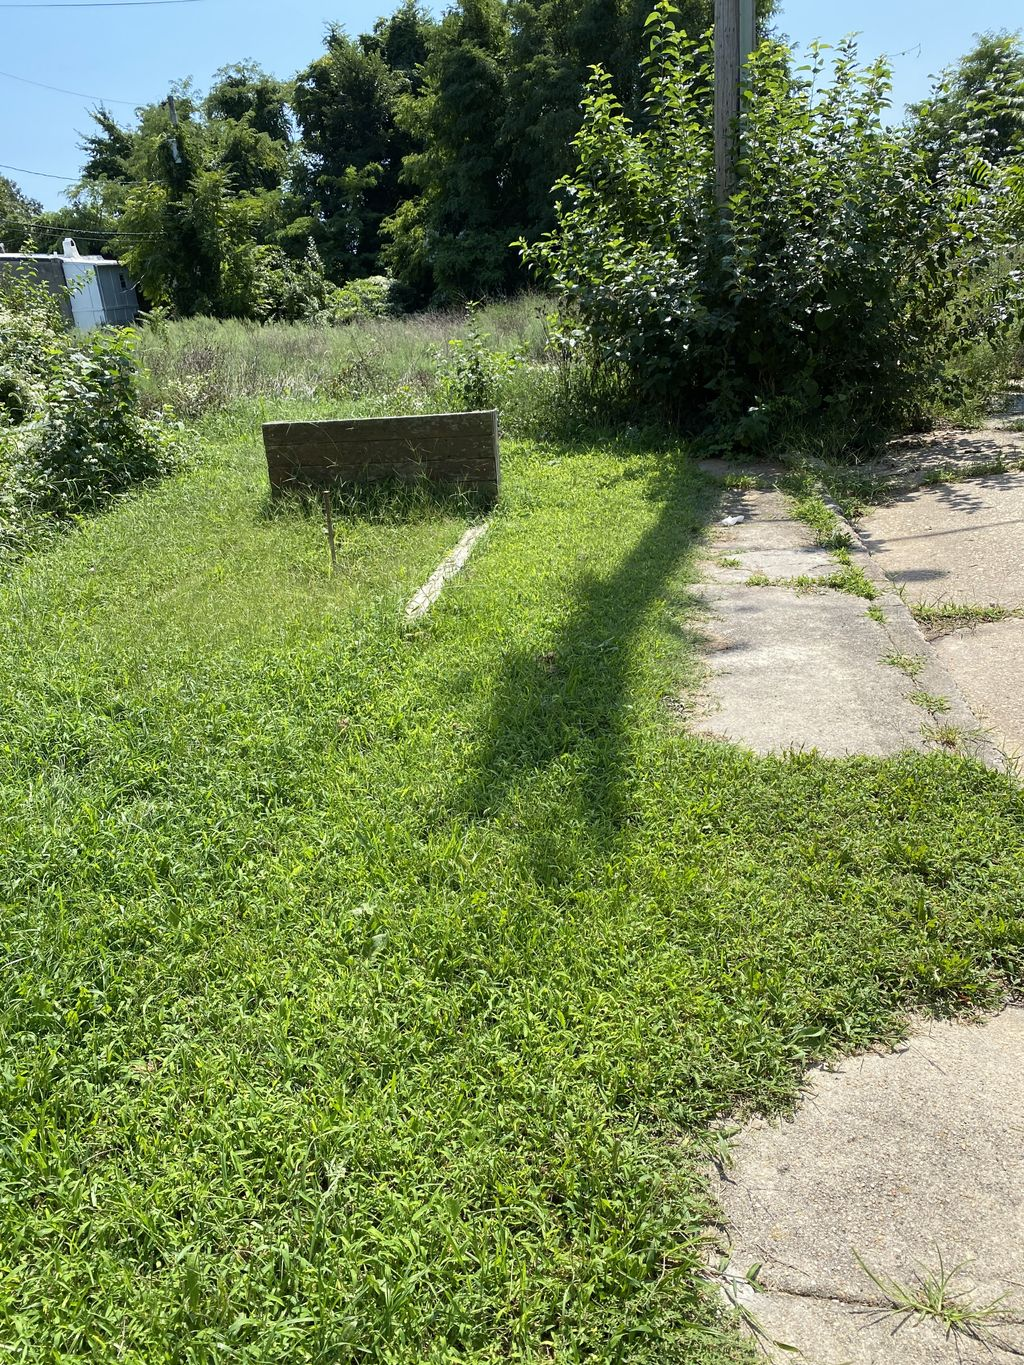 Weeding and shrubs removal